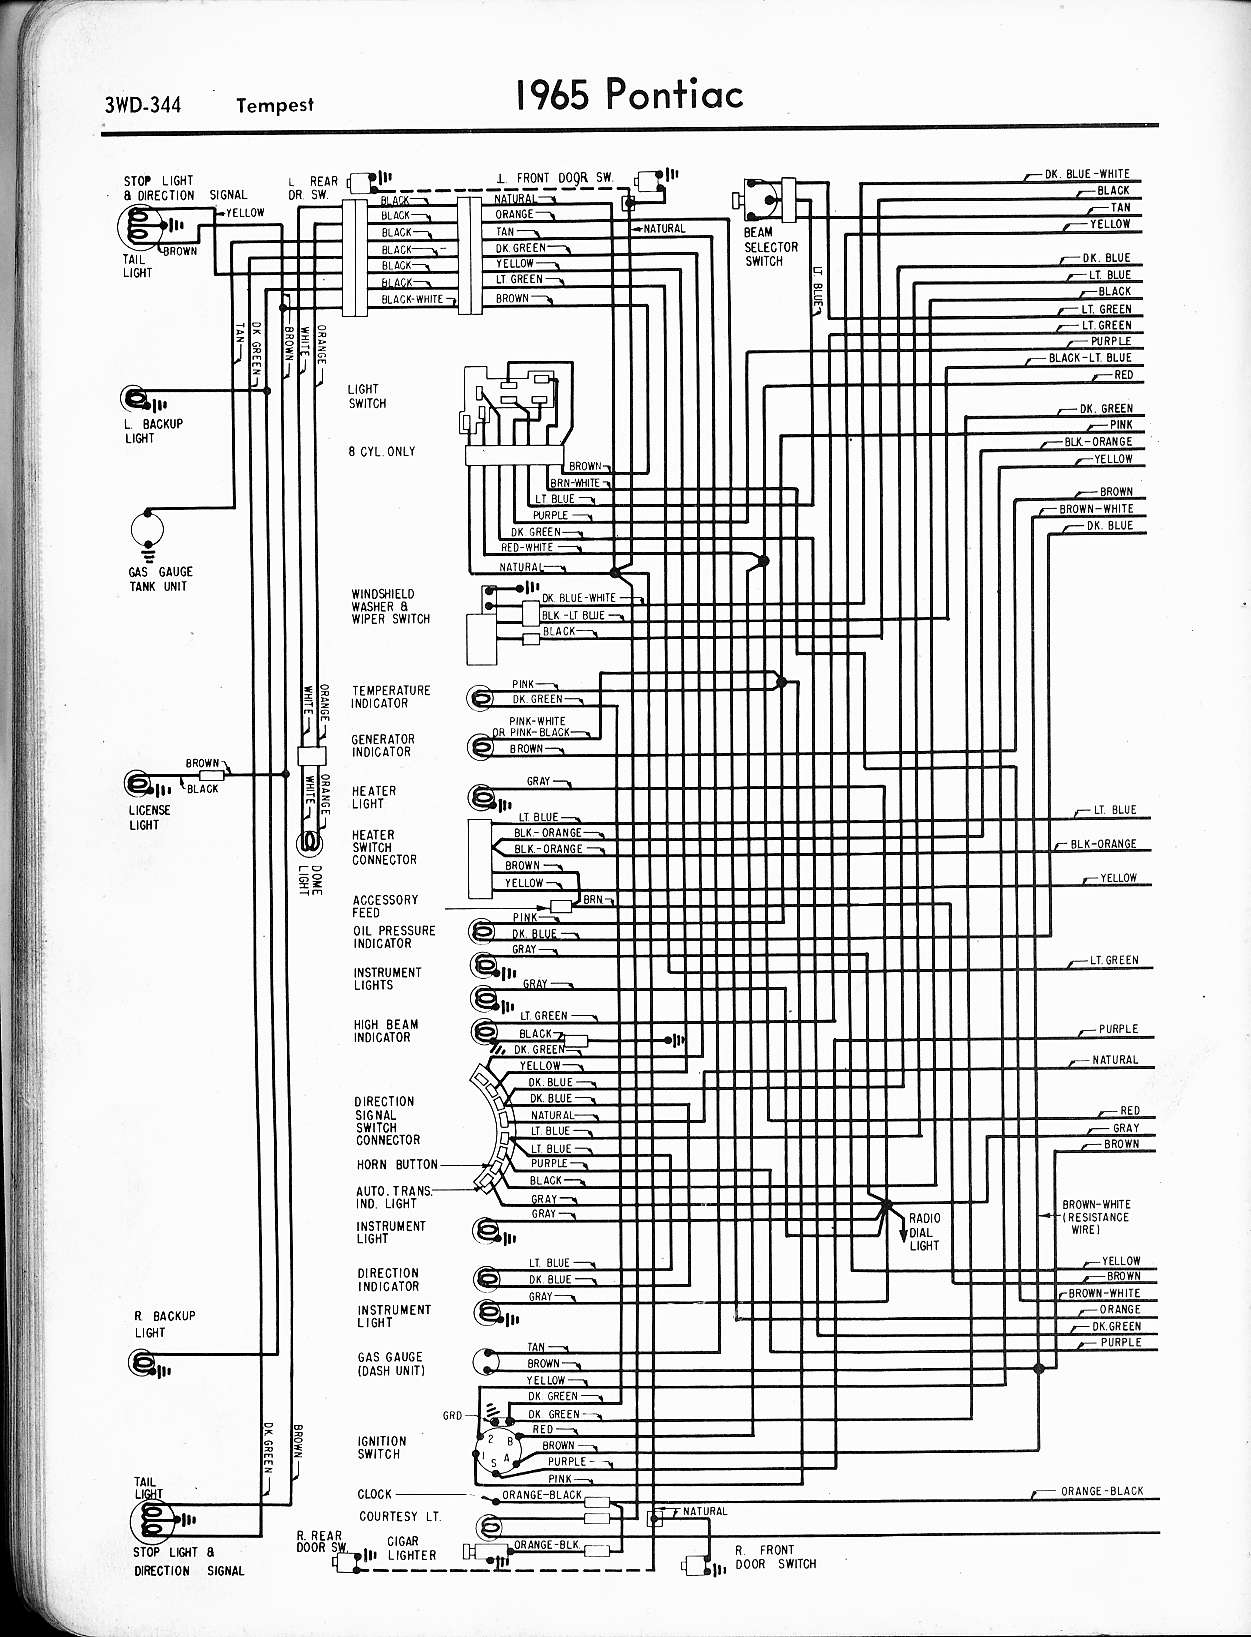 Incredible 1964 Gto Wiring Harness Basic Electronics Wiring Diagram Letkol Mohammedshrine Wiring Cloud Letkolmohammedshrineorg